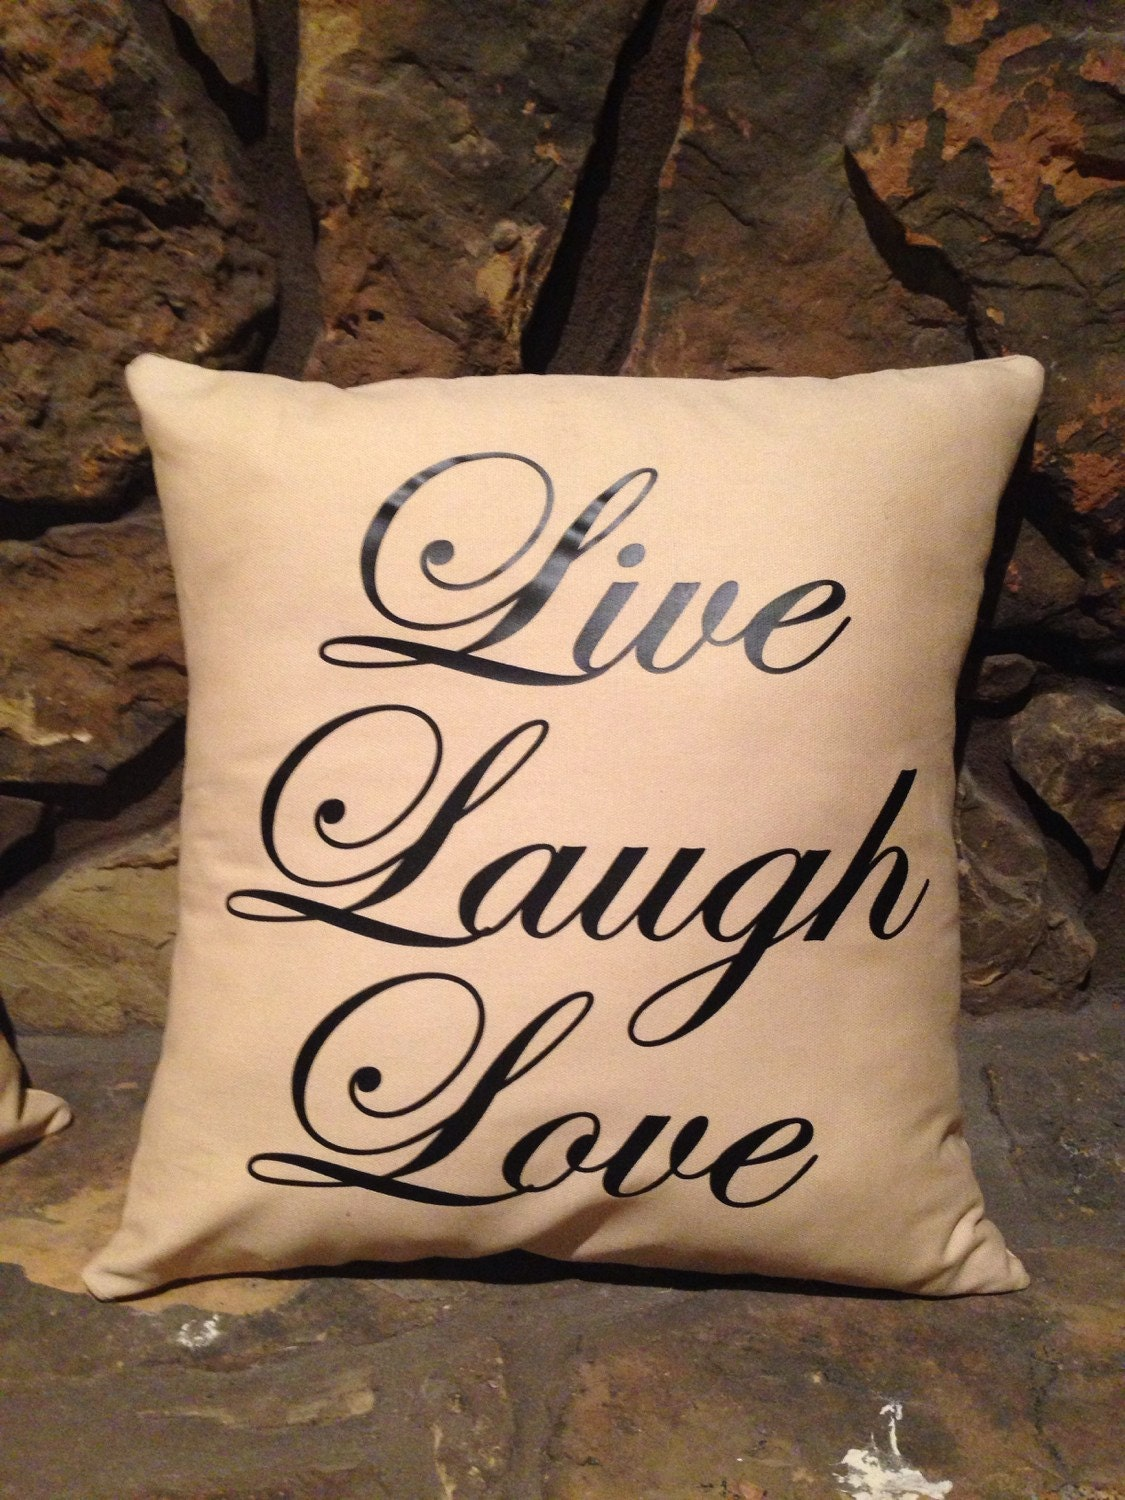 Decorative Love Pillow : Live laugh love pillow 16 x 16 decorative by BibsBurpsNThings